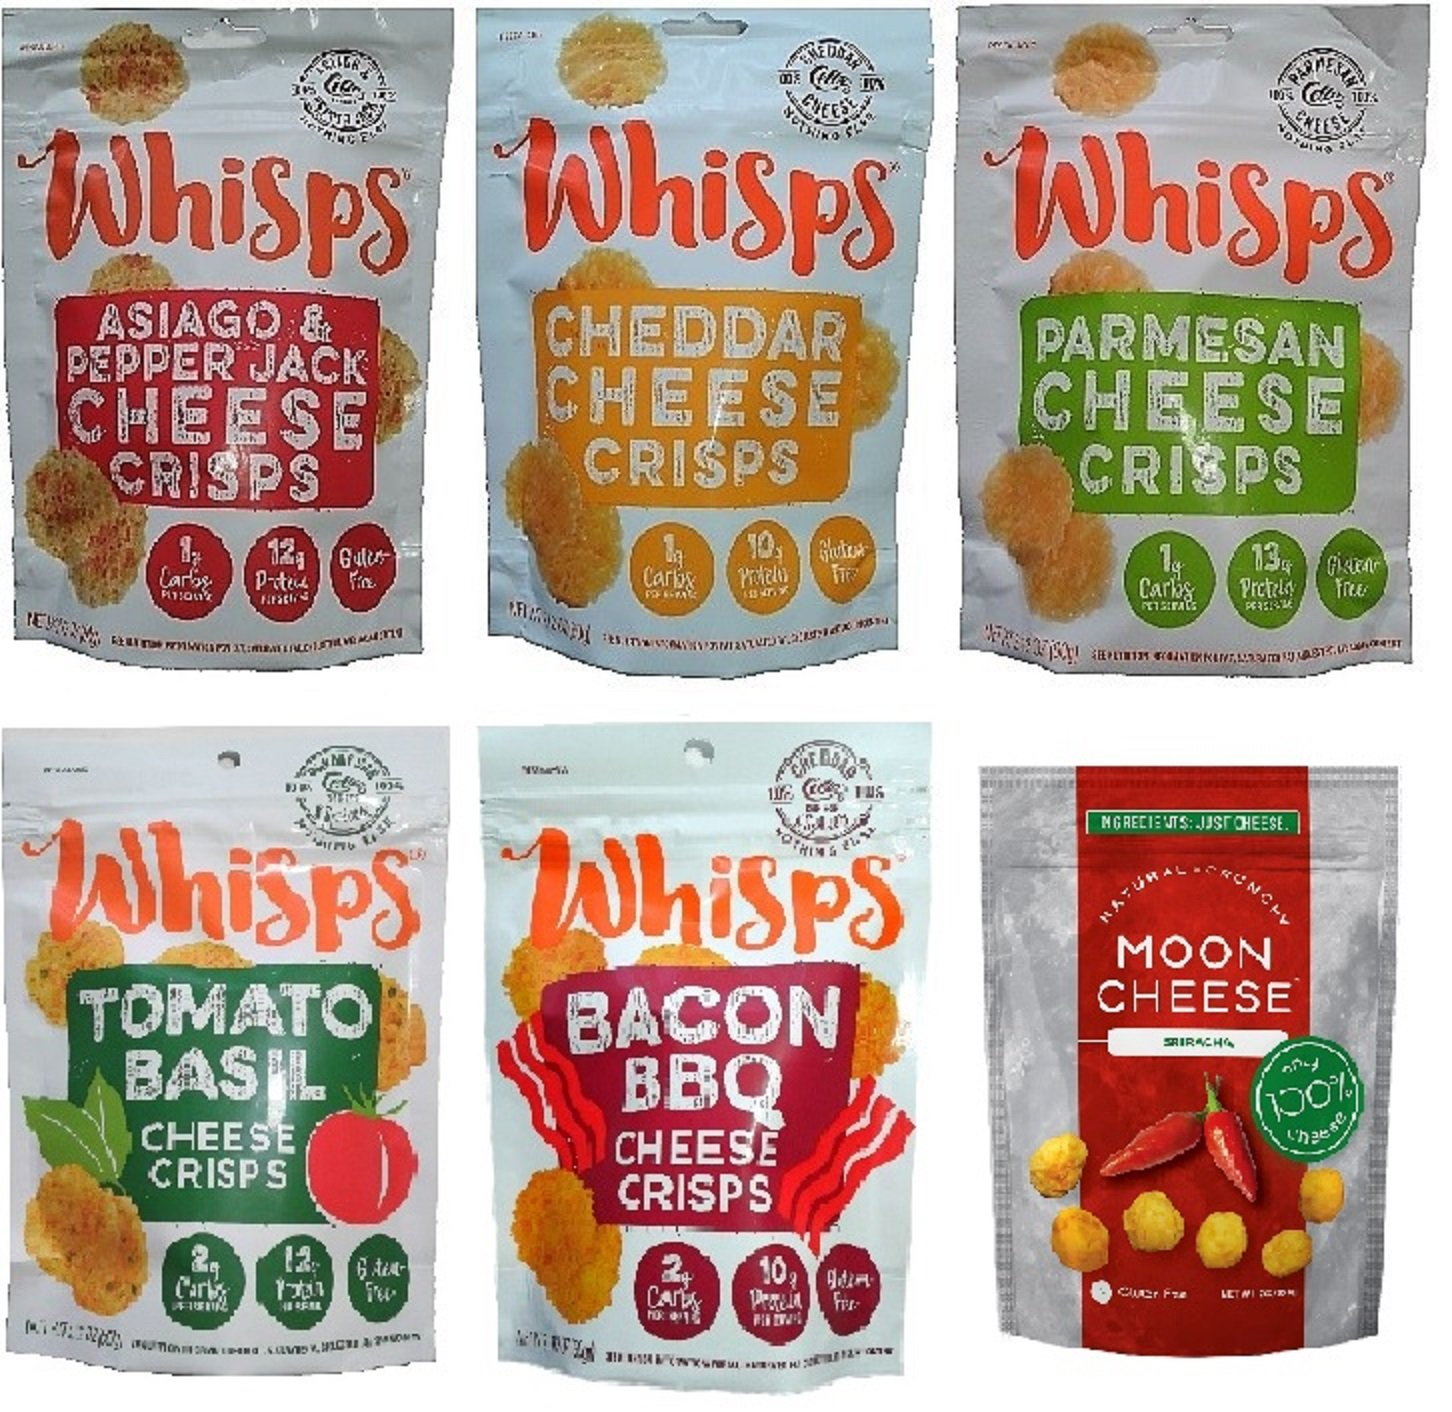 Low Carb, Gluten Free, High Protein, 100% Cheese - Whisps Cheese Crisps 5 Flavors (2.12oz) and Moon Cheese Sriracha (2oz) 6 Pack Bundle